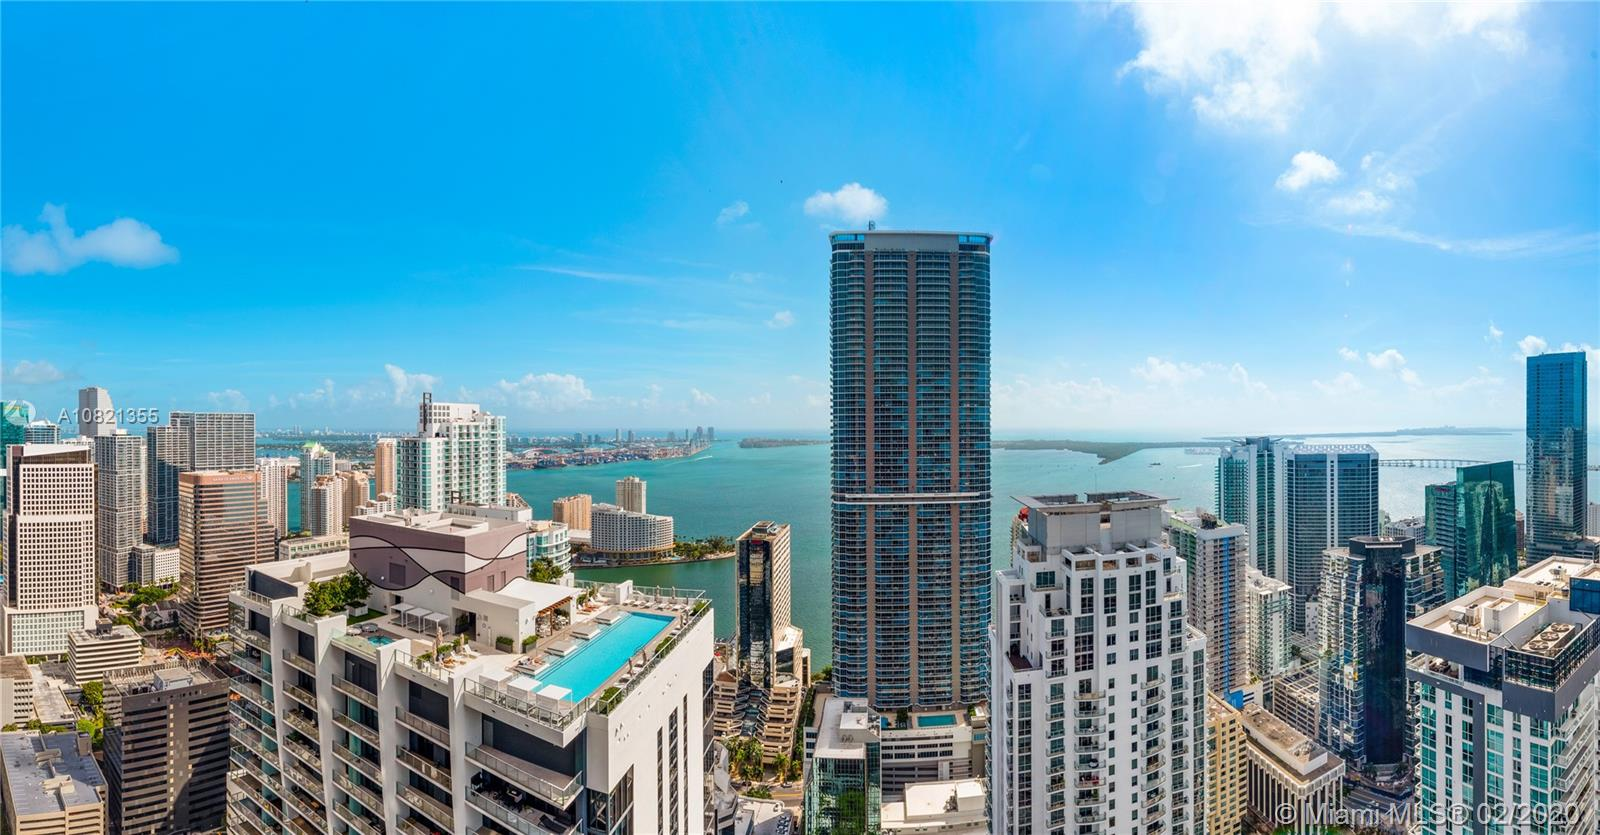 Worldclass views from this 3 Bed + Den/3.5 Bath Lower Penthouse at Brickell Flatiron with higher ceilings.  Italian Porcelain floors, hidden hinge doors, Snaidero kitchens, and a great floorplan create an incredible home in the sky.  Come see the rooftop pool, spa and fitness center with Pilates/yoga and aerobics studio, private steam and sauna facilities.  Some of the other amenties include a children's play area, game room, movie theatre and recreation rooms. All in the heart of Brickell.